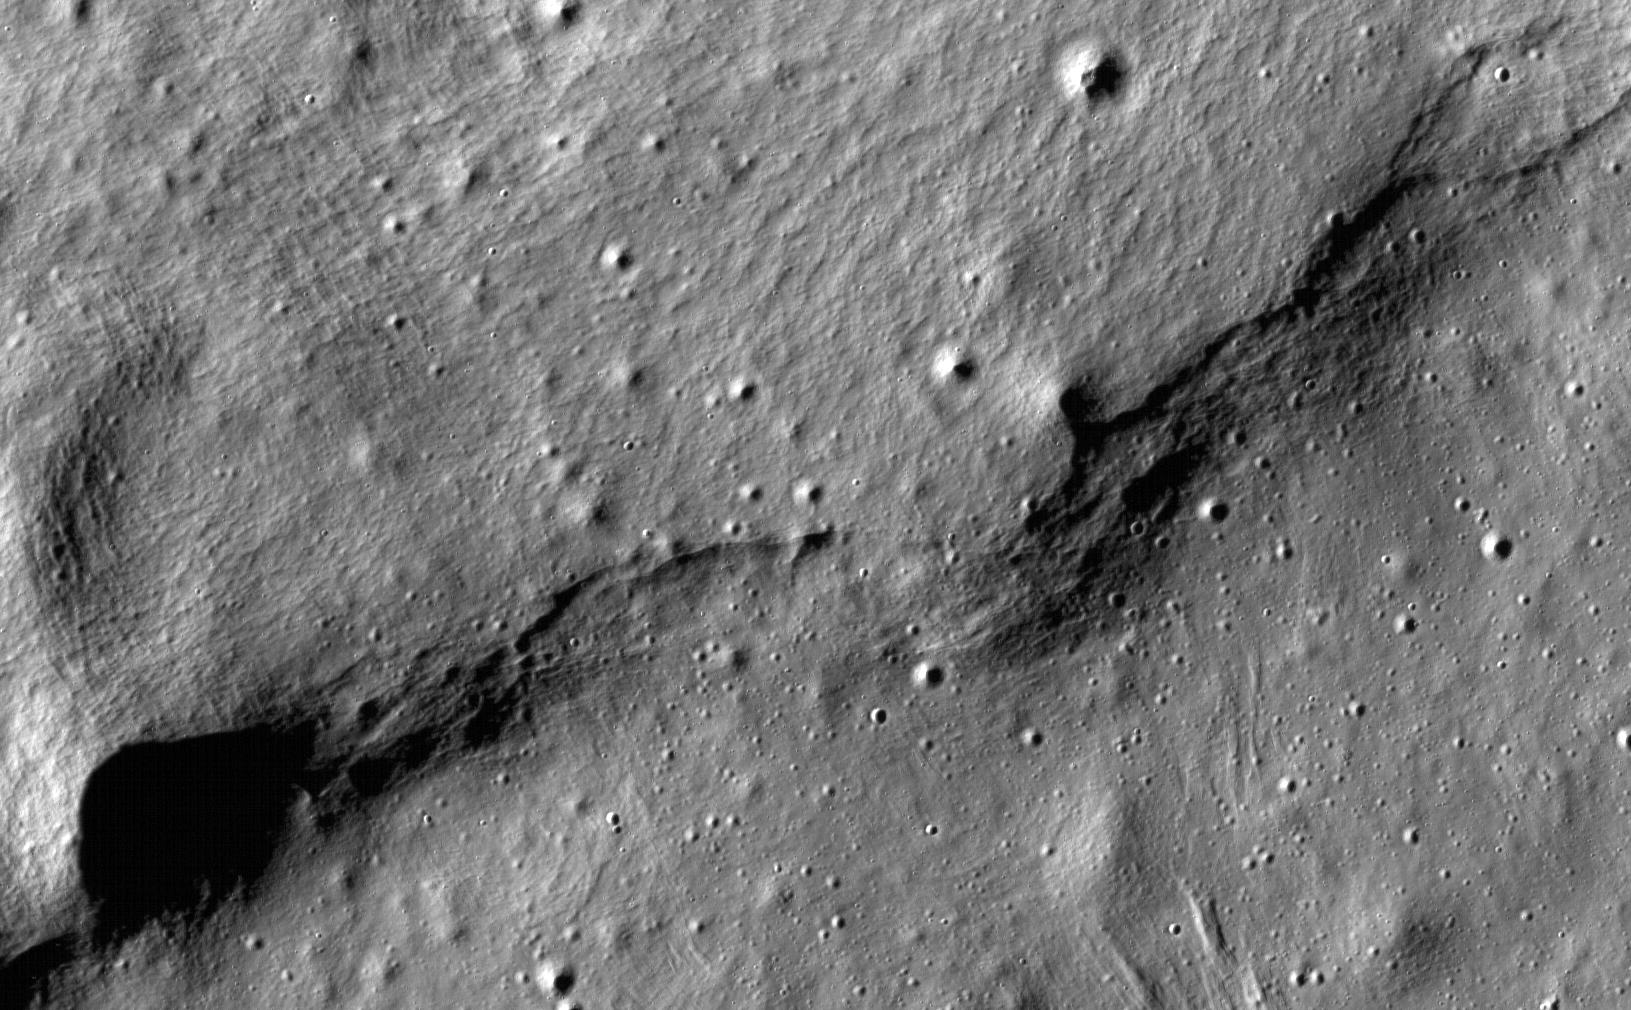 This image of lobate scarps, which is a kind of curved hill, was taken near a region of the Moon called Mare Frigoris by NASA's Lunar Reconnaissance Orbiter. It and other areas may show current tectonic activity on the Moon. Photo Credit: NASA